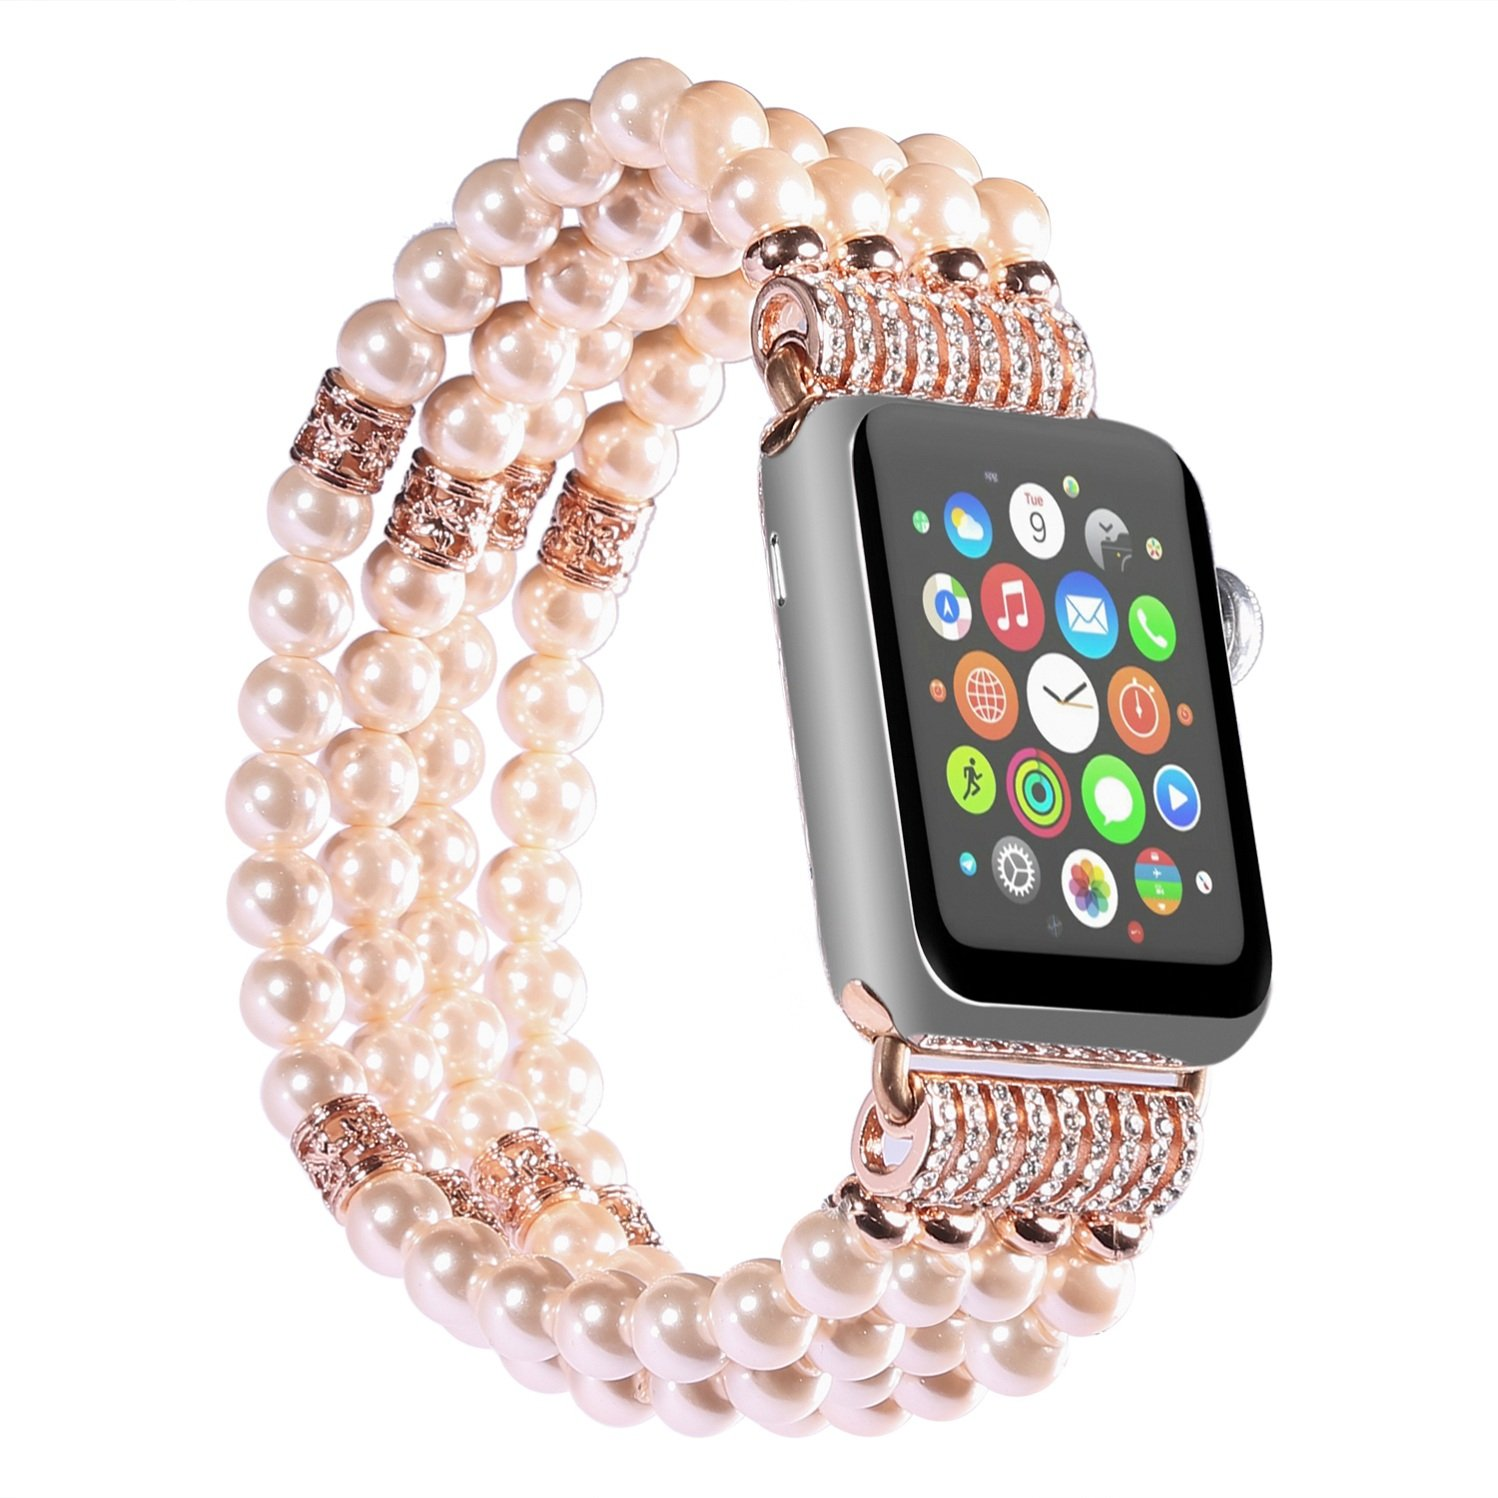 Juzzhou Watch Band For Apple iWatch Replacement Bracelet Handmade Beaded Pearl Agate Pearls Jewels Elastic Stretch Wrist Strap Wriststrap Watchband With Metal Adapter For Woman Girl Rose Gold 38mm